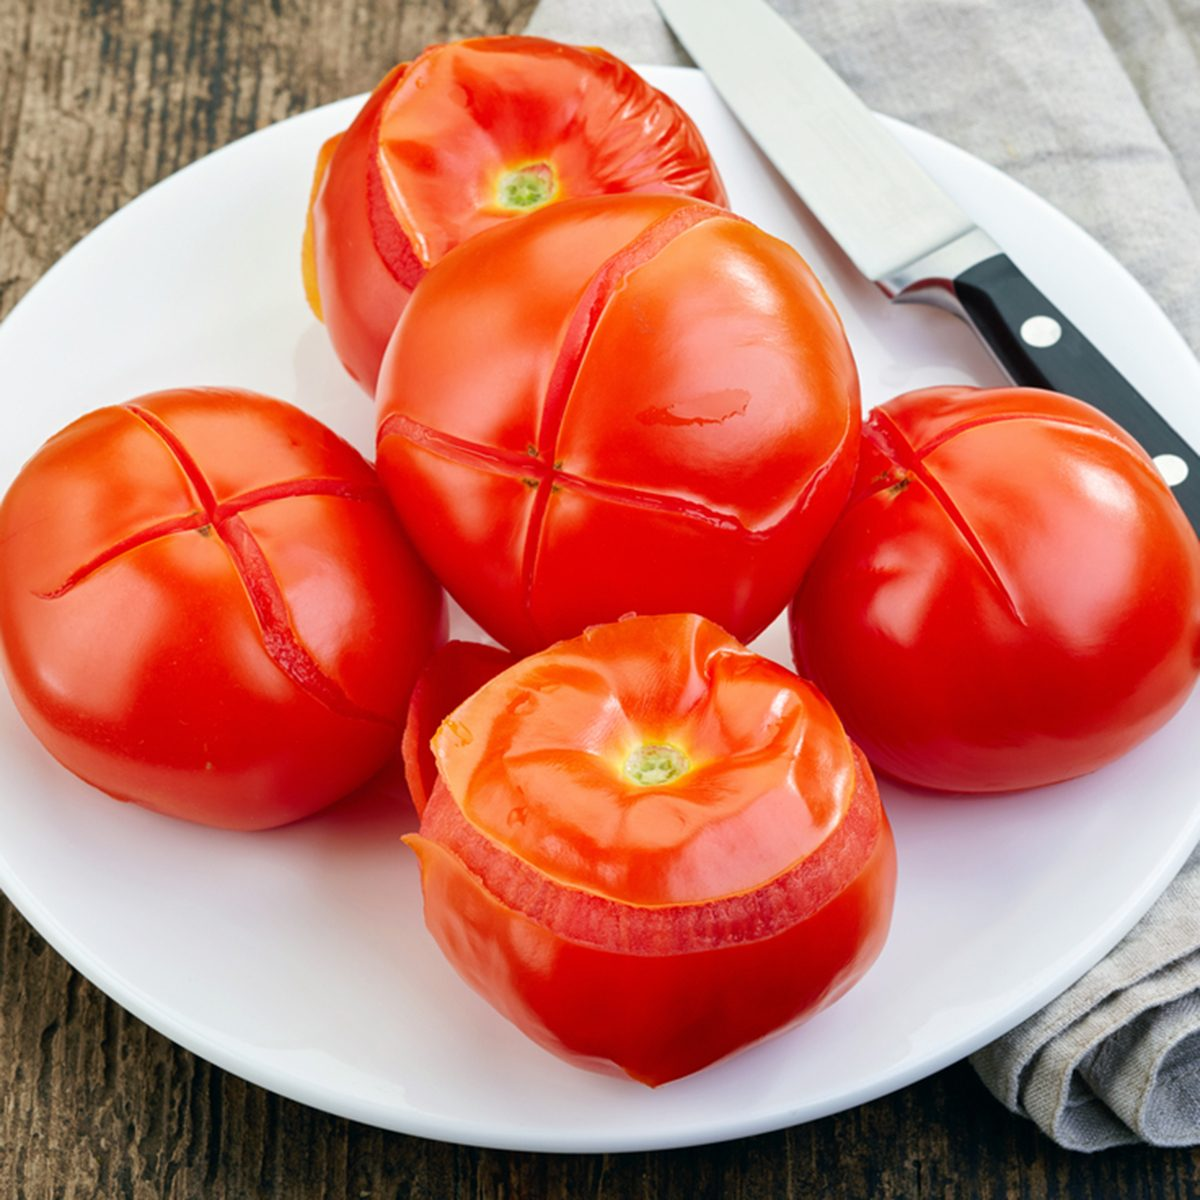 blanched tomatoes on plate